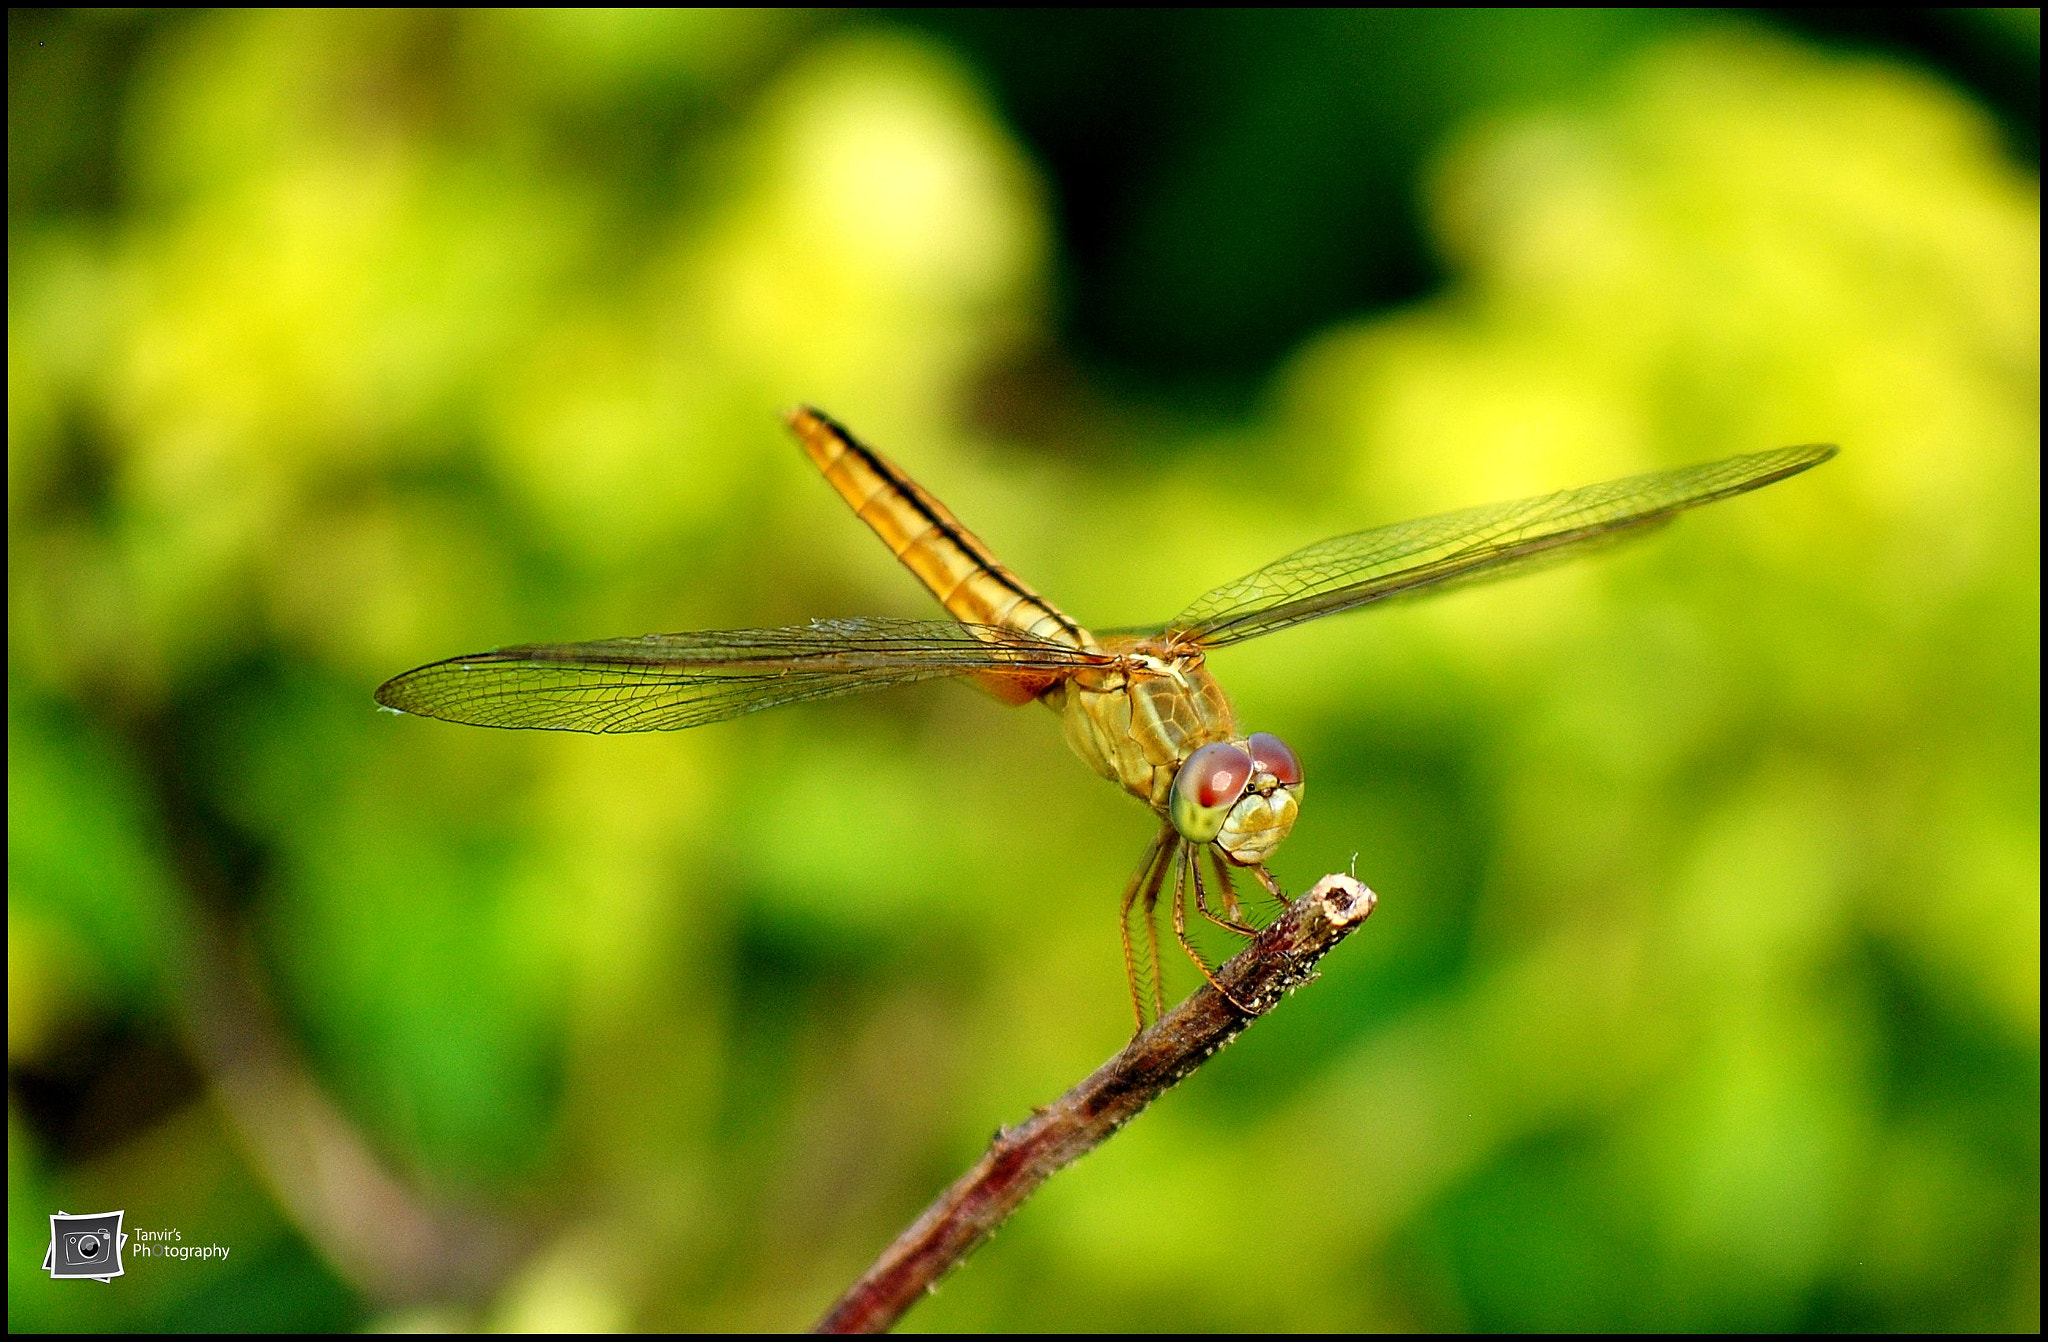 Photograph Dragonfly by Tanvir Khan on 500px